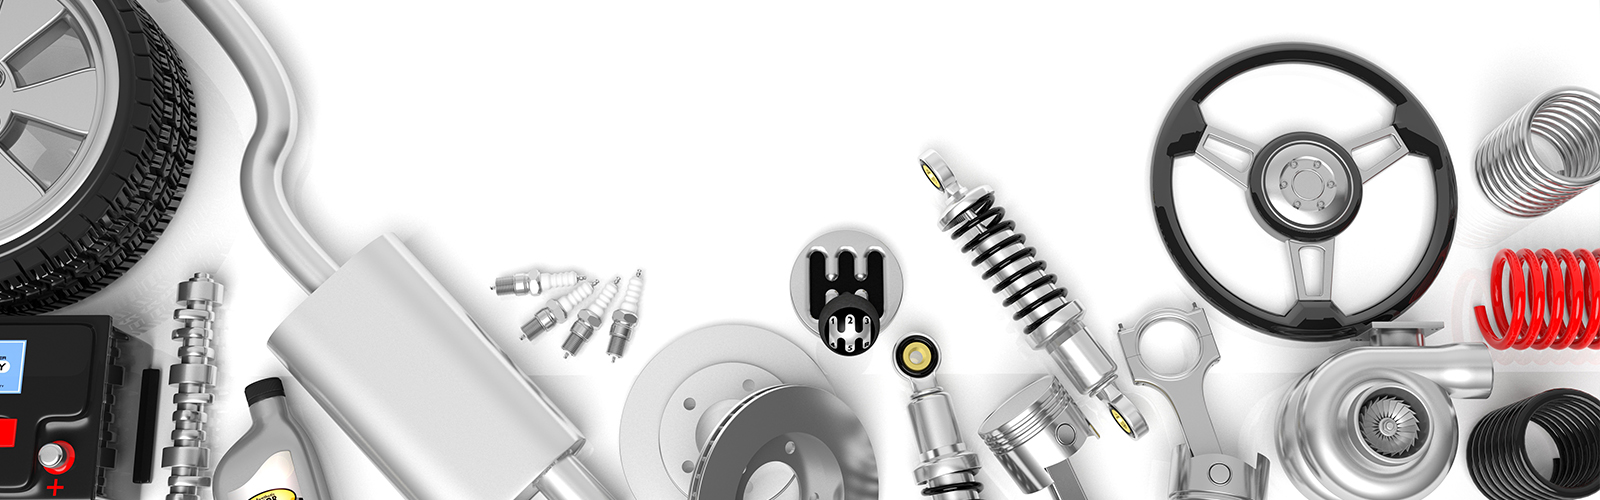 A collage of vehicle spare parts, engine components and accessories.